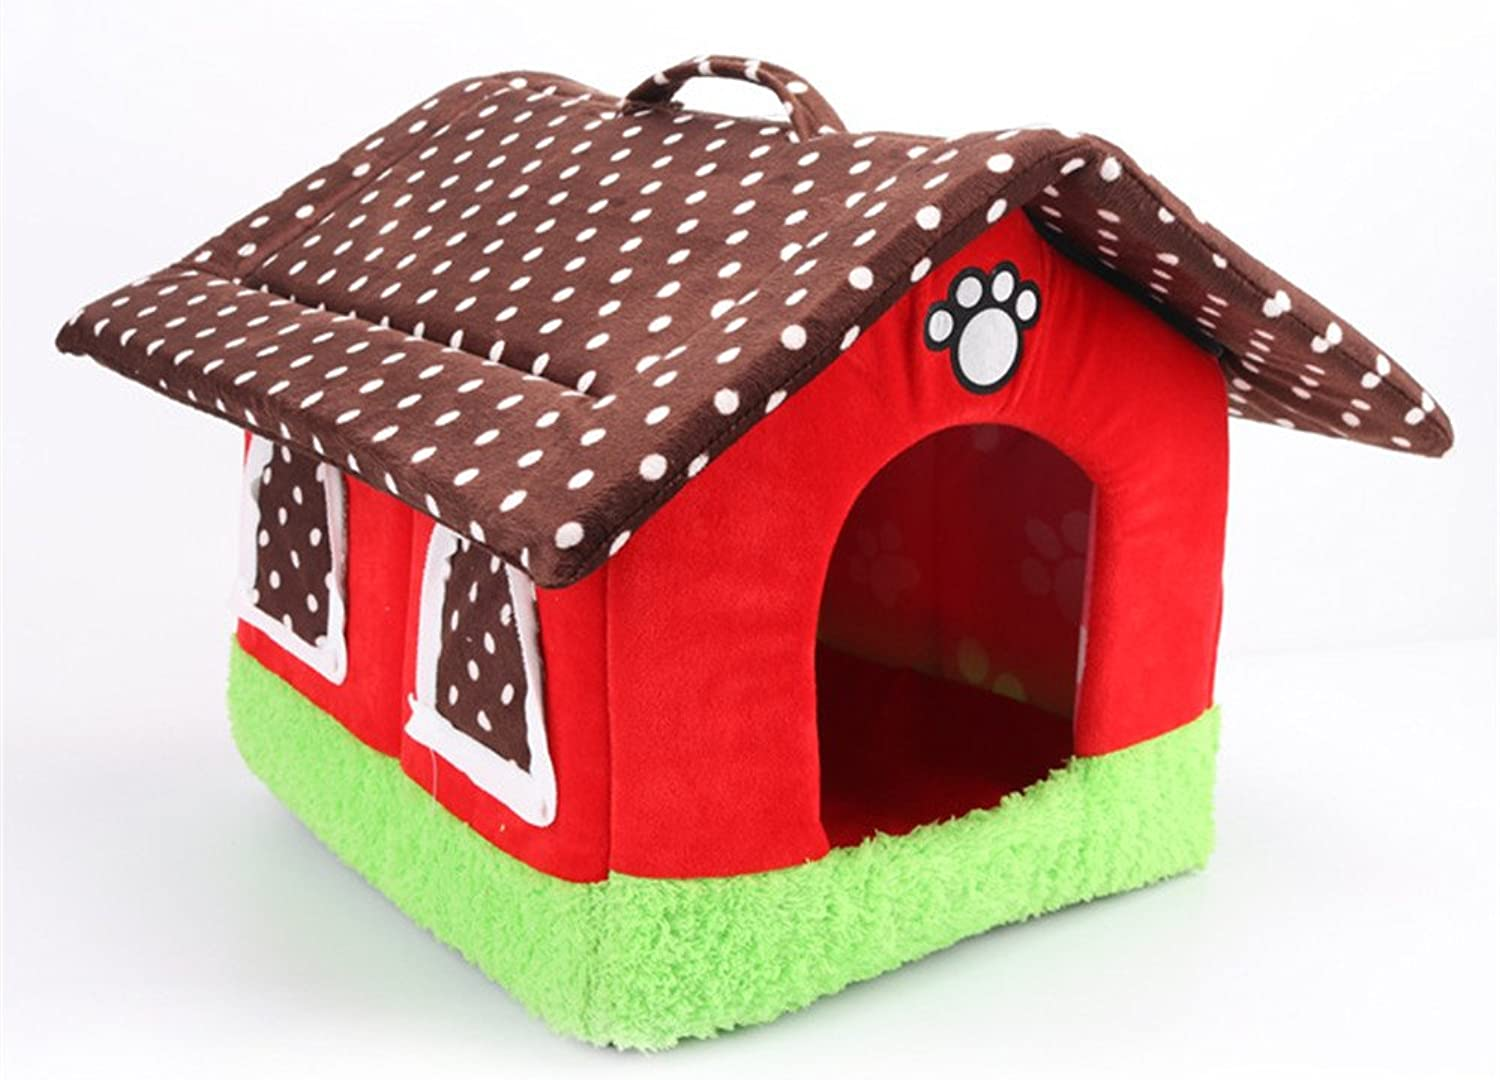 LXLP Pet House Supplies Dog House Cottages Cat Dog Bed House Kennel Doggy Warm Cushion Basket (13.4×13.4×14.2inch, Red)